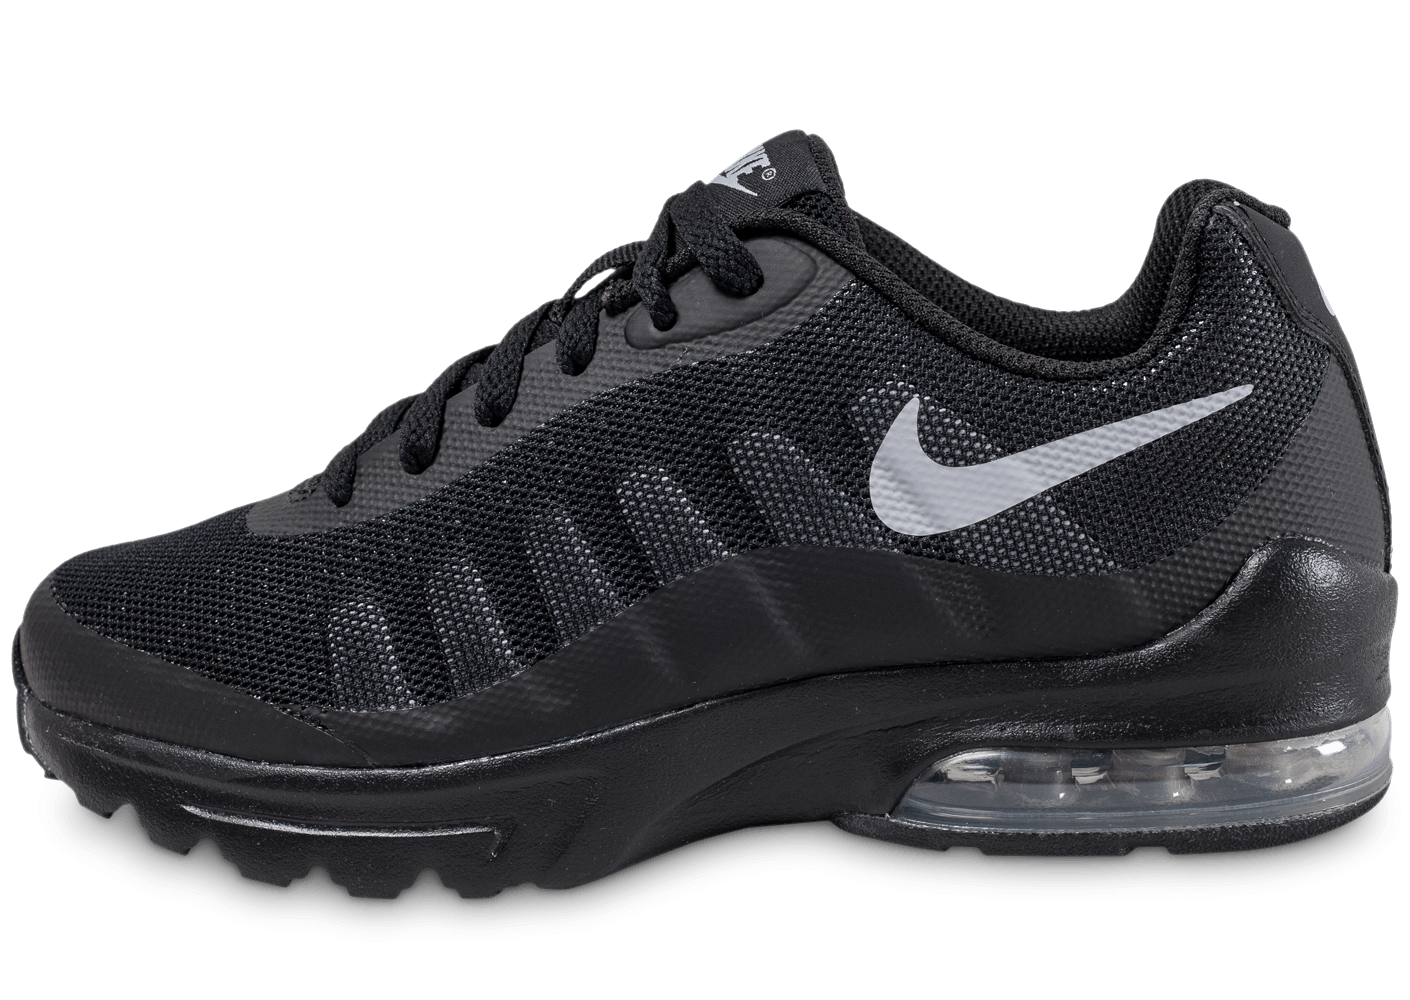 nike air max invigor junior noire chaussures enfant chausport. Black Bedroom Furniture Sets. Home Design Ideas